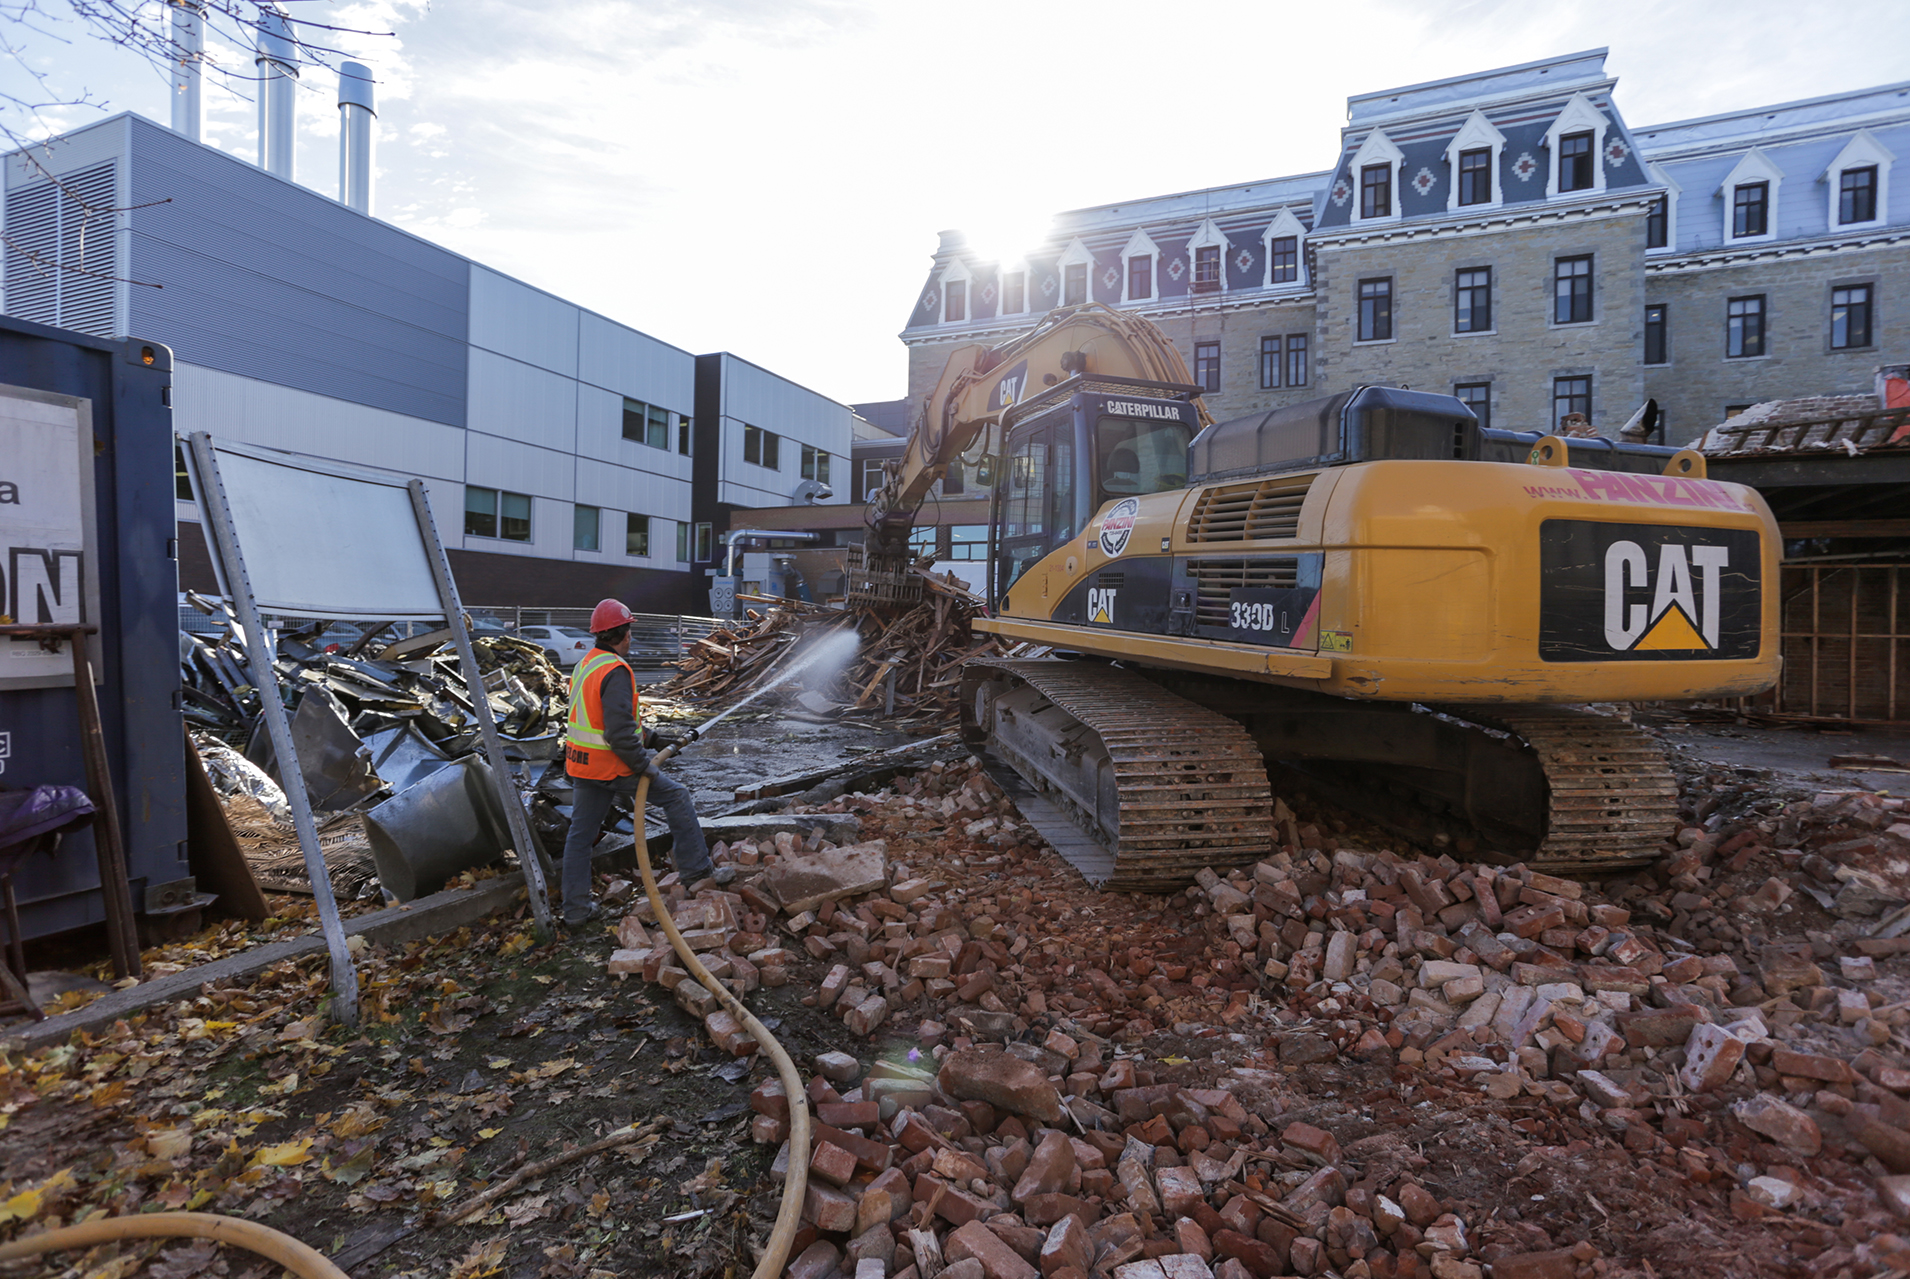 Demolition, recycling and liquidation of construction material 10 - Panzini Demolition - Montreal, Québec